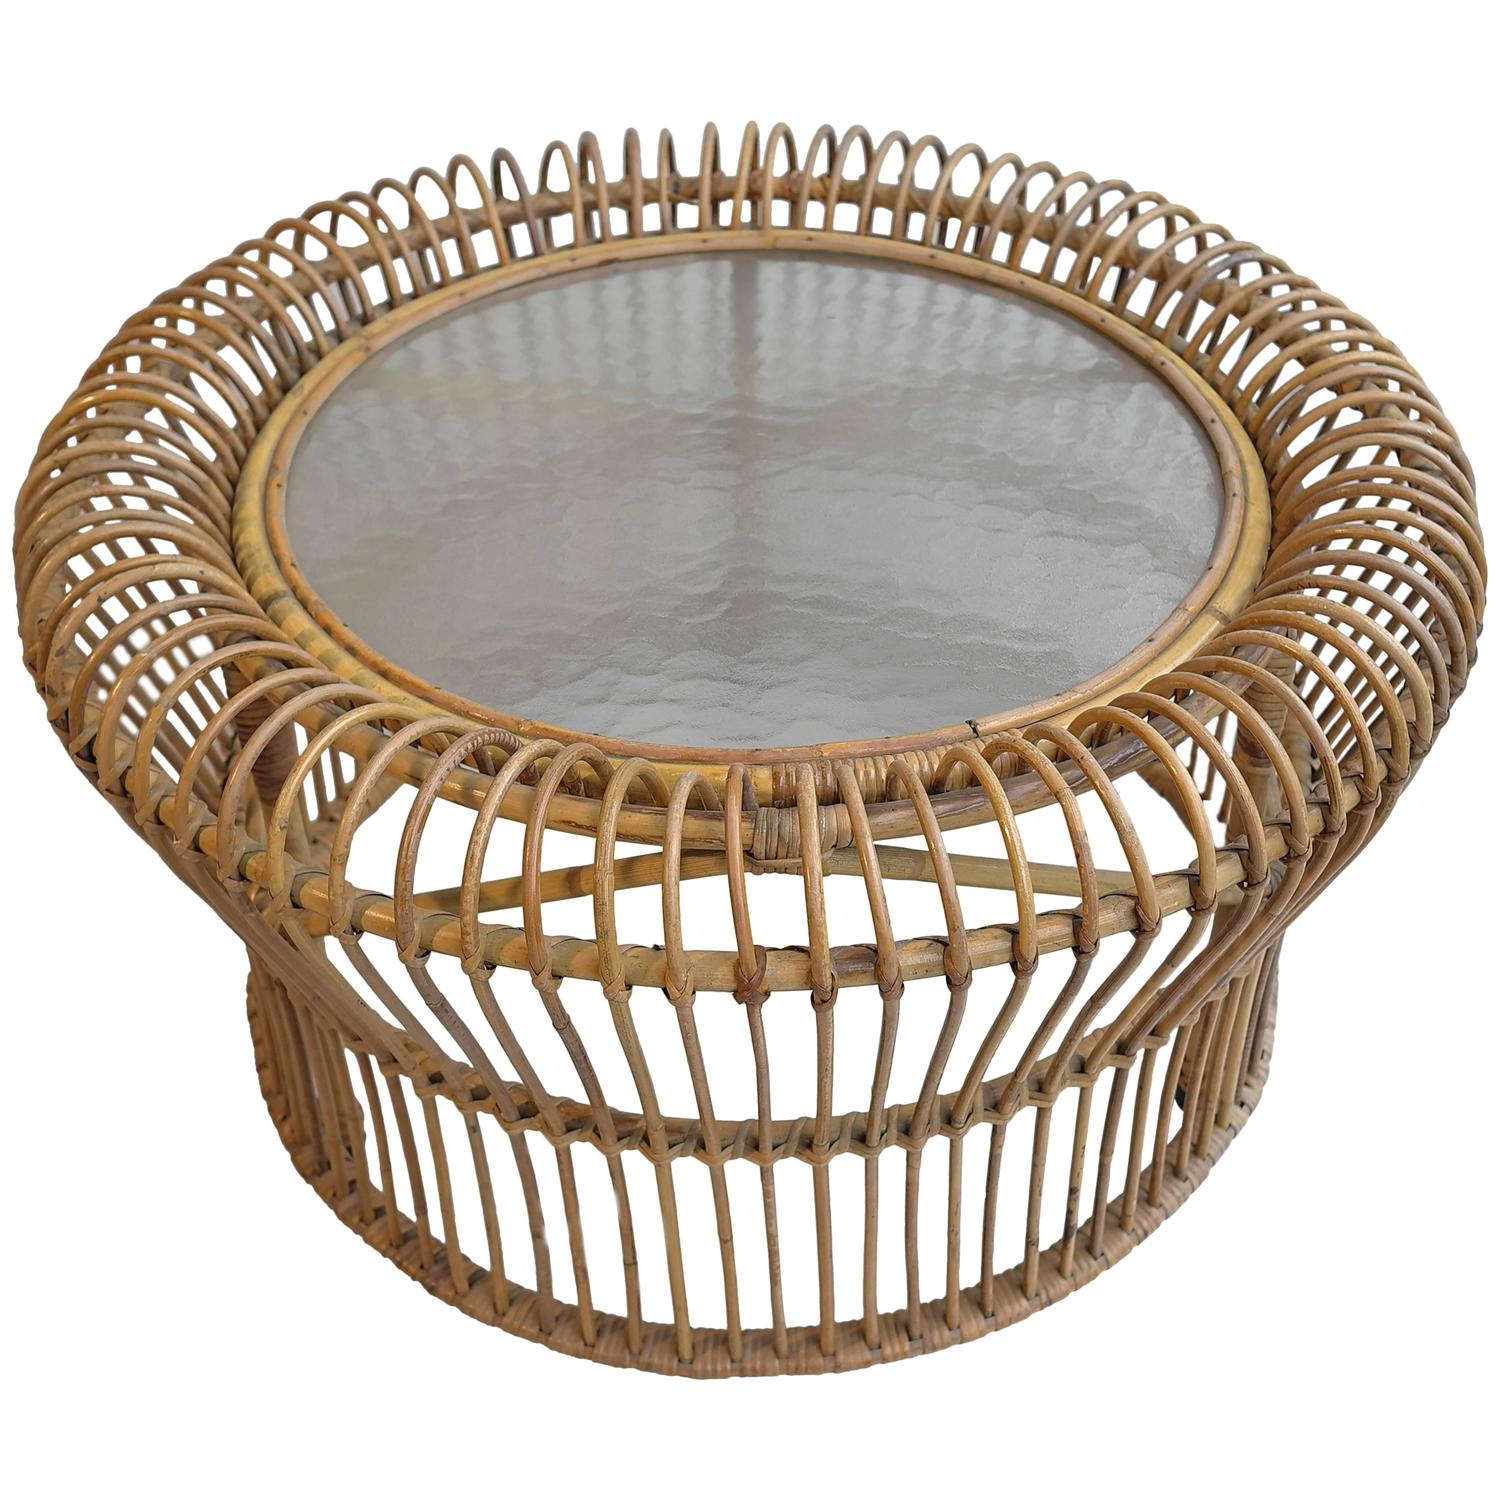 Italian Rattan Coffee table in style of Franco Albini For Sale at